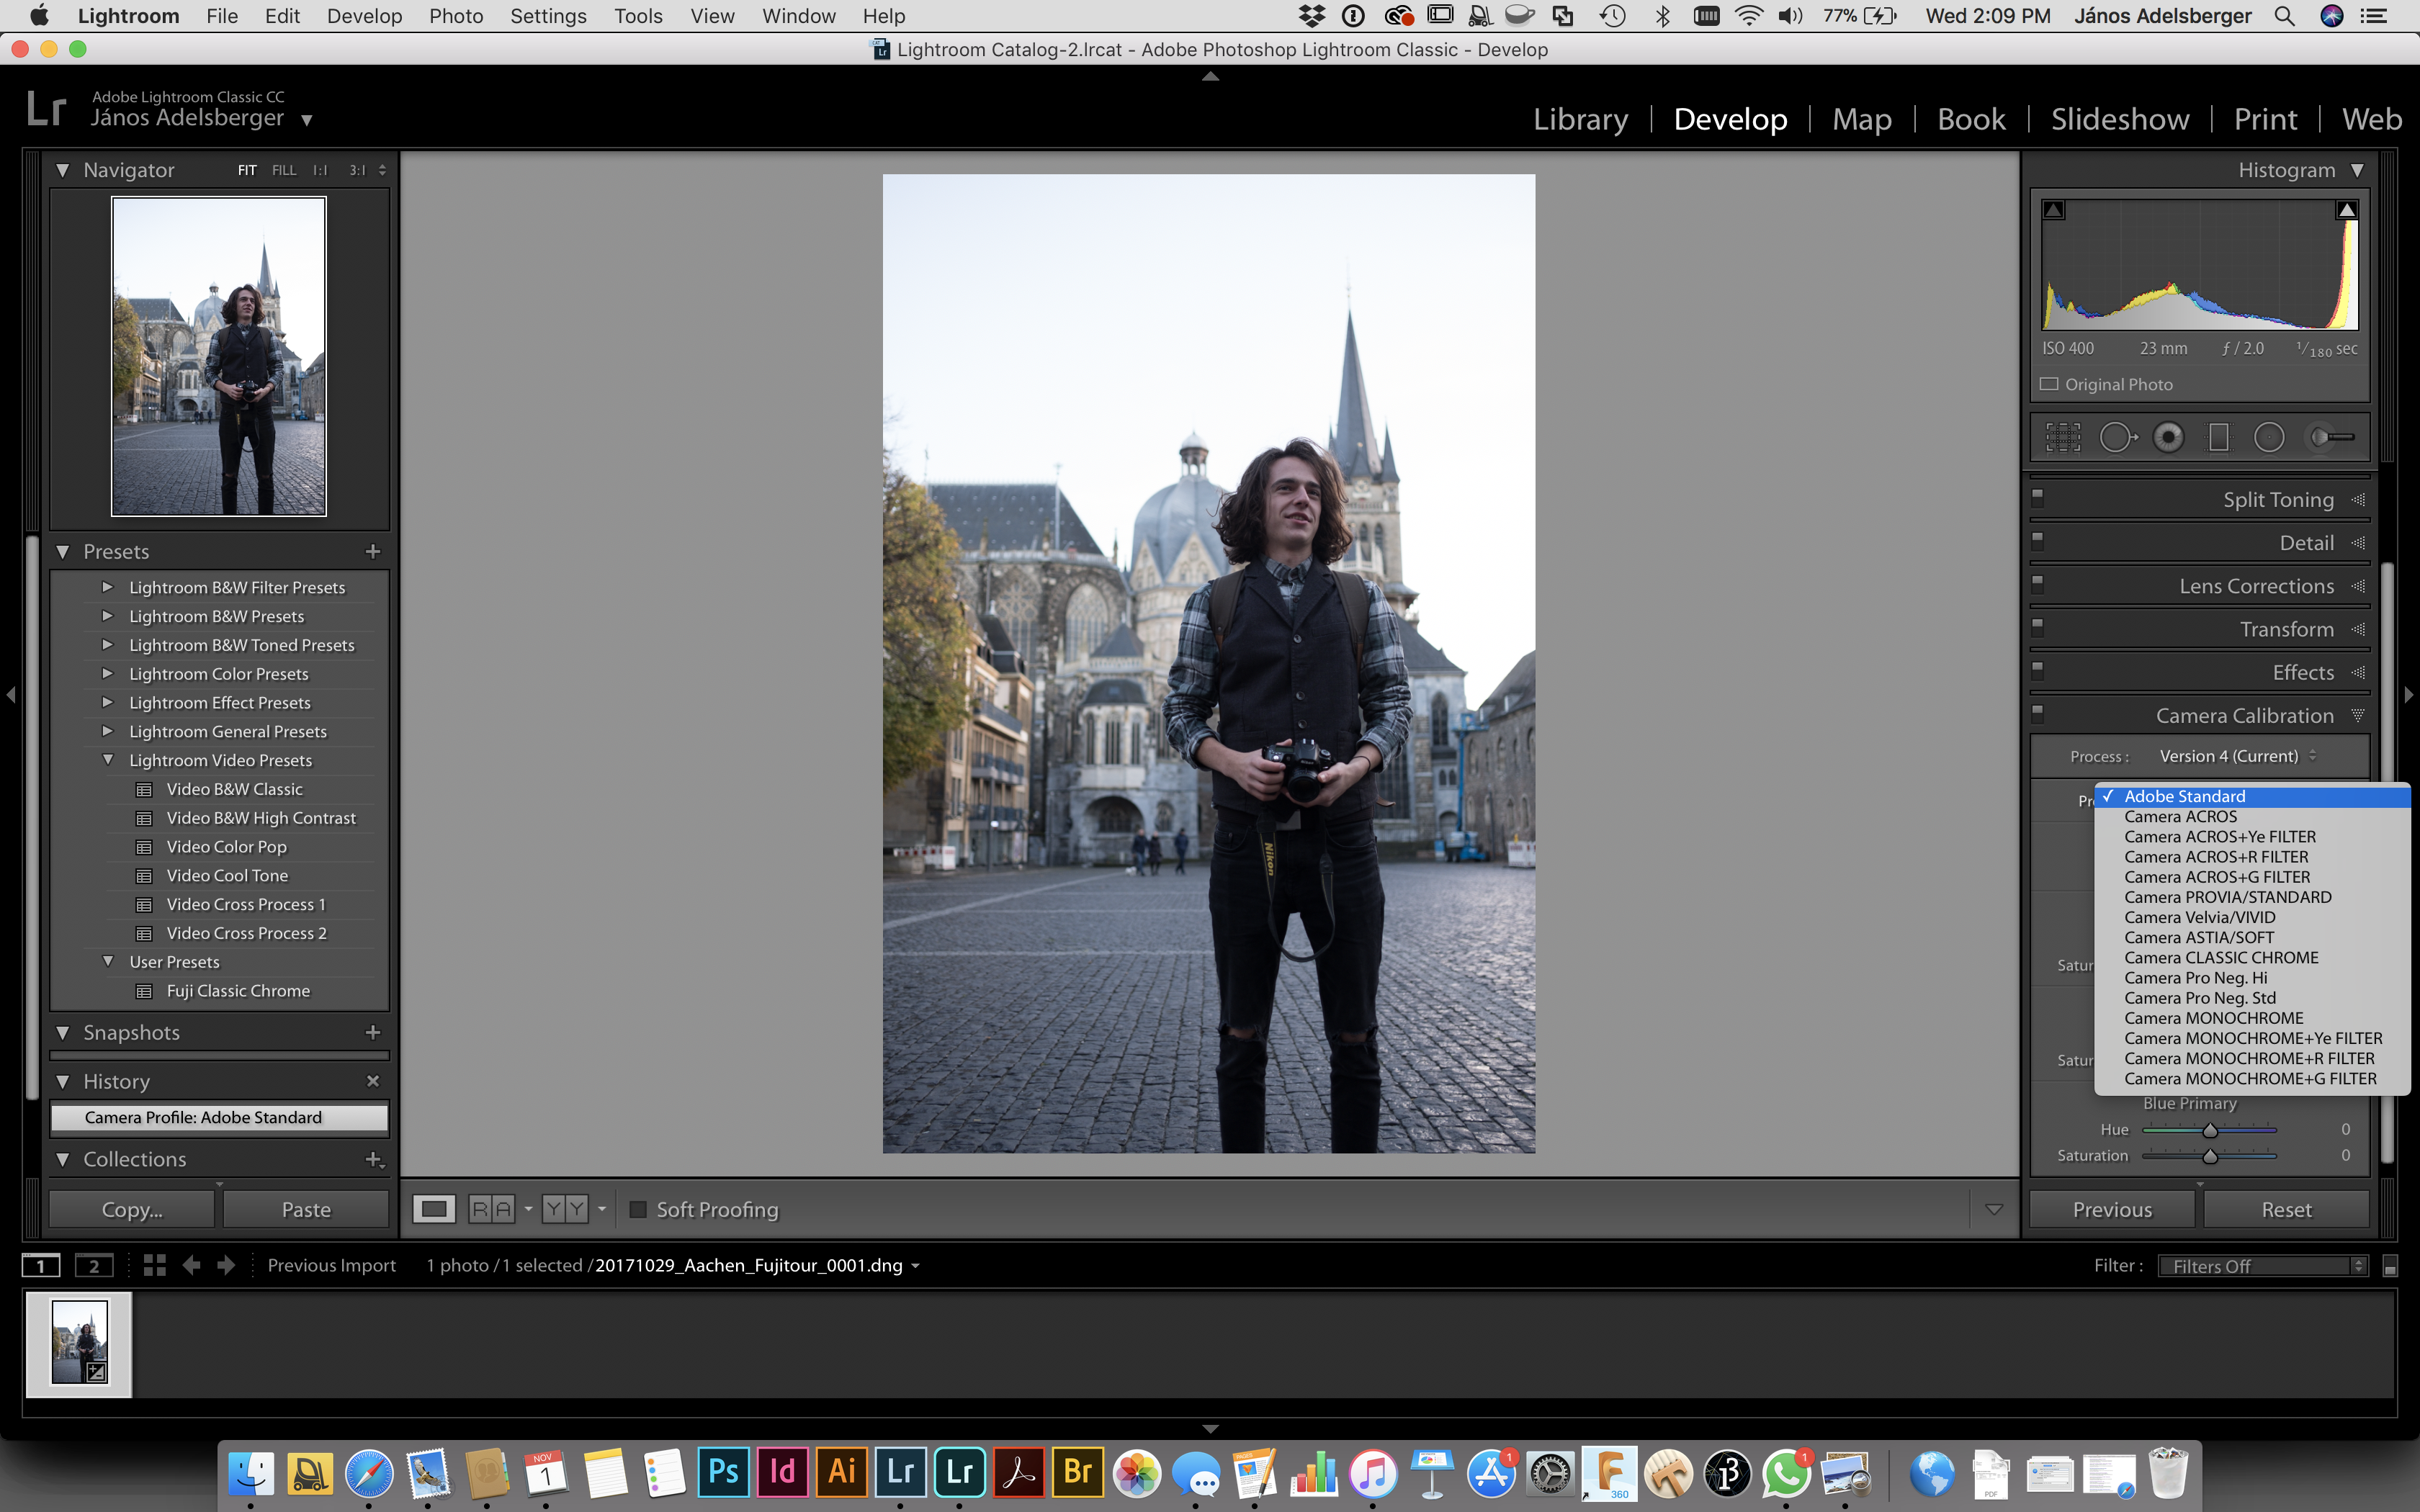 Fuji Film Simulation for RAW in the new Lightroom CC